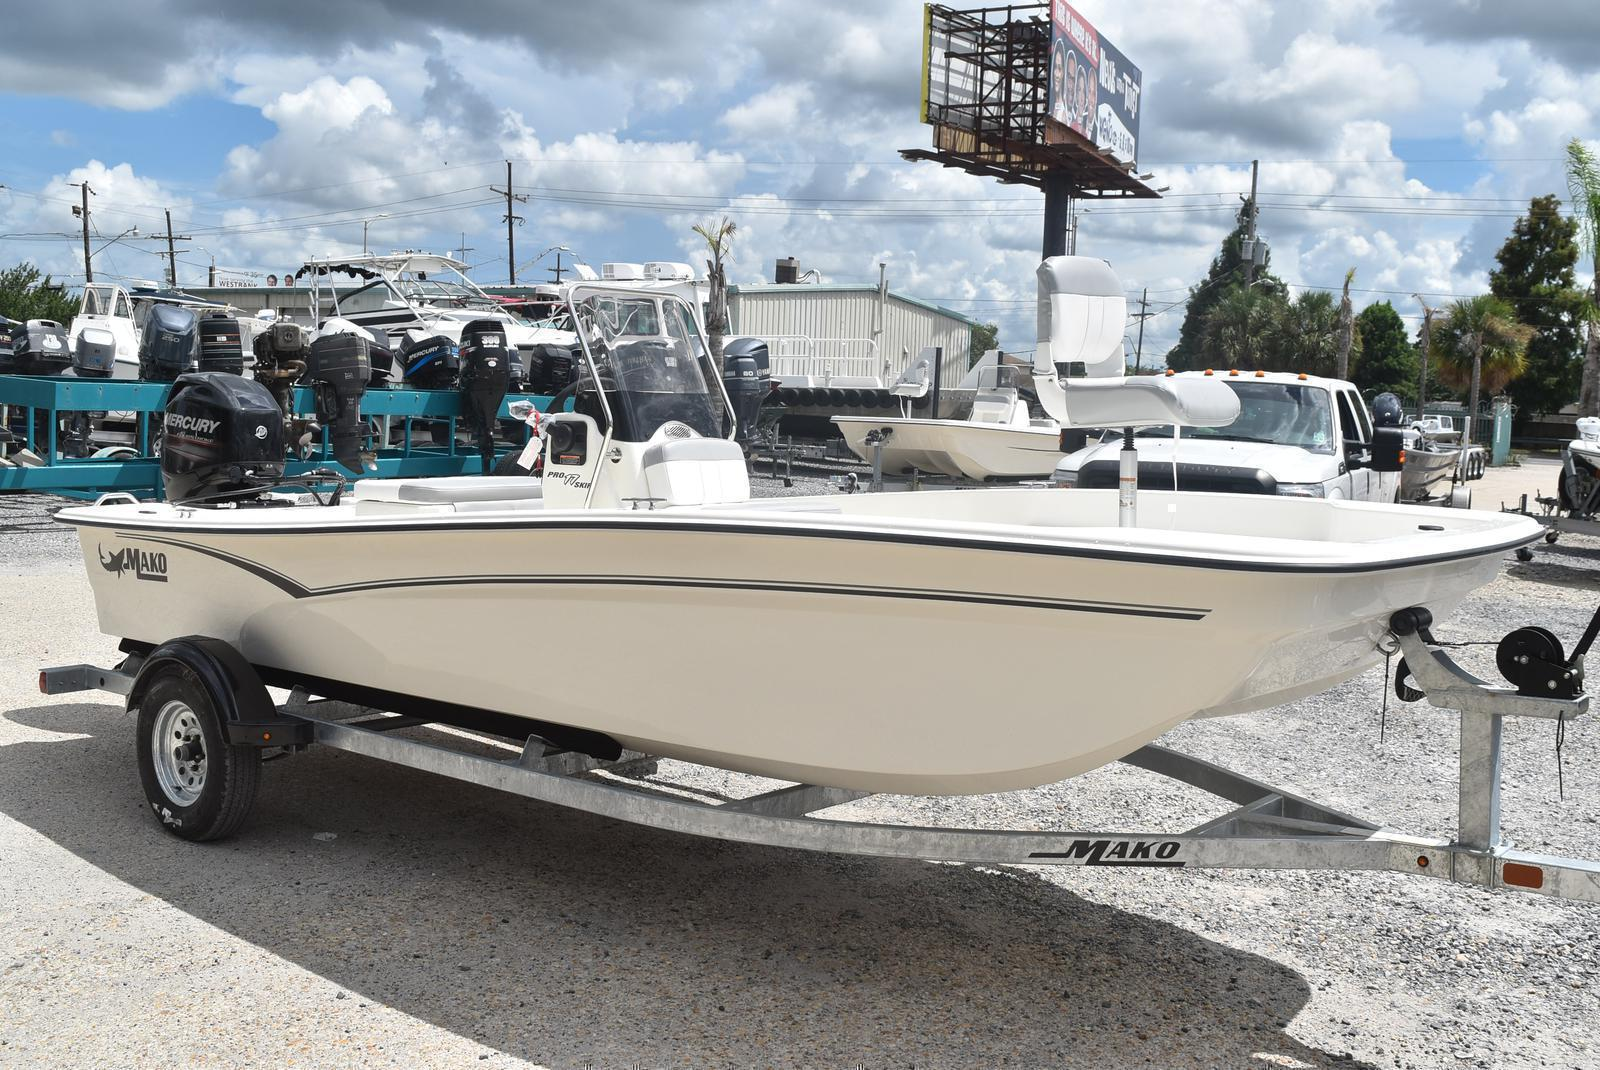 2020 Mako boat for sale, model of the boat is Pro Skiff 17, 75 ELPT & Image # 686 of 702